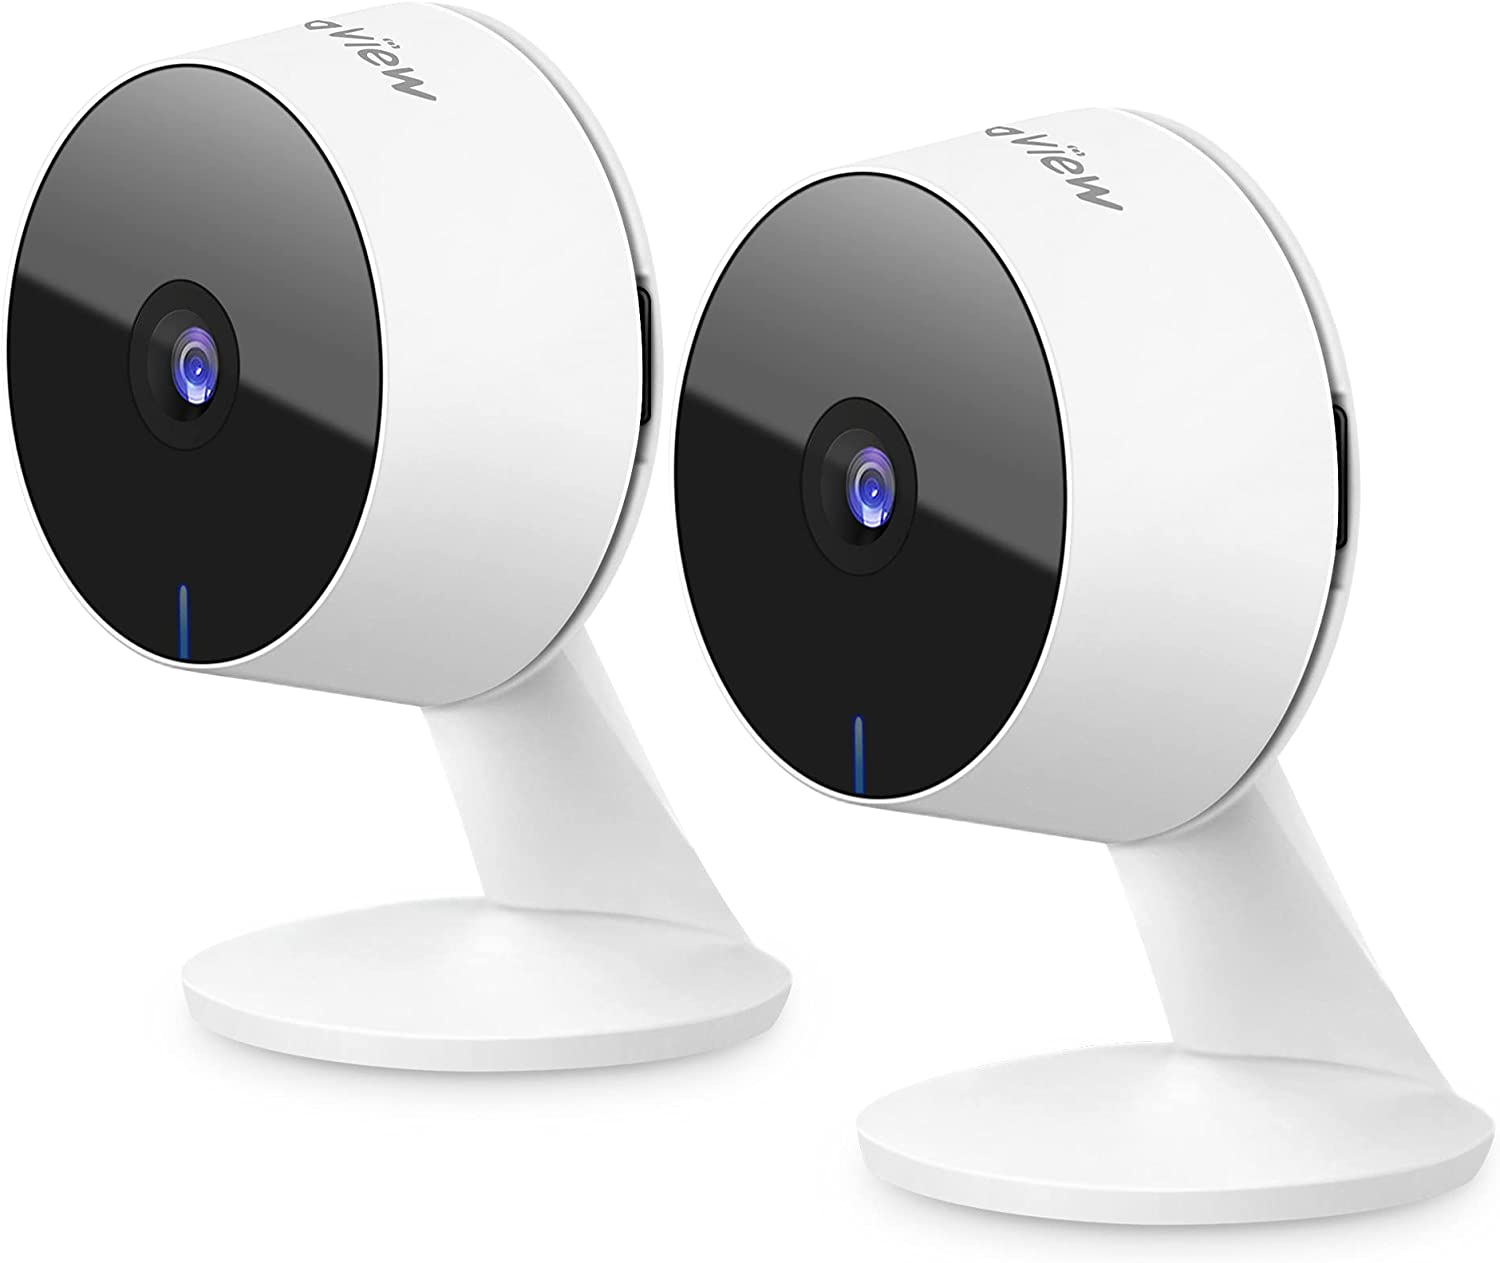 Laview Home Security Camera HD 1080P(2 Pack) Motion Detection,Include 2 SD Cards,Two-Way Audio,Night Vision,WiFi Indoor Surveillance for Baby/pet,Alexa and Google,Cloud Service (US Server)